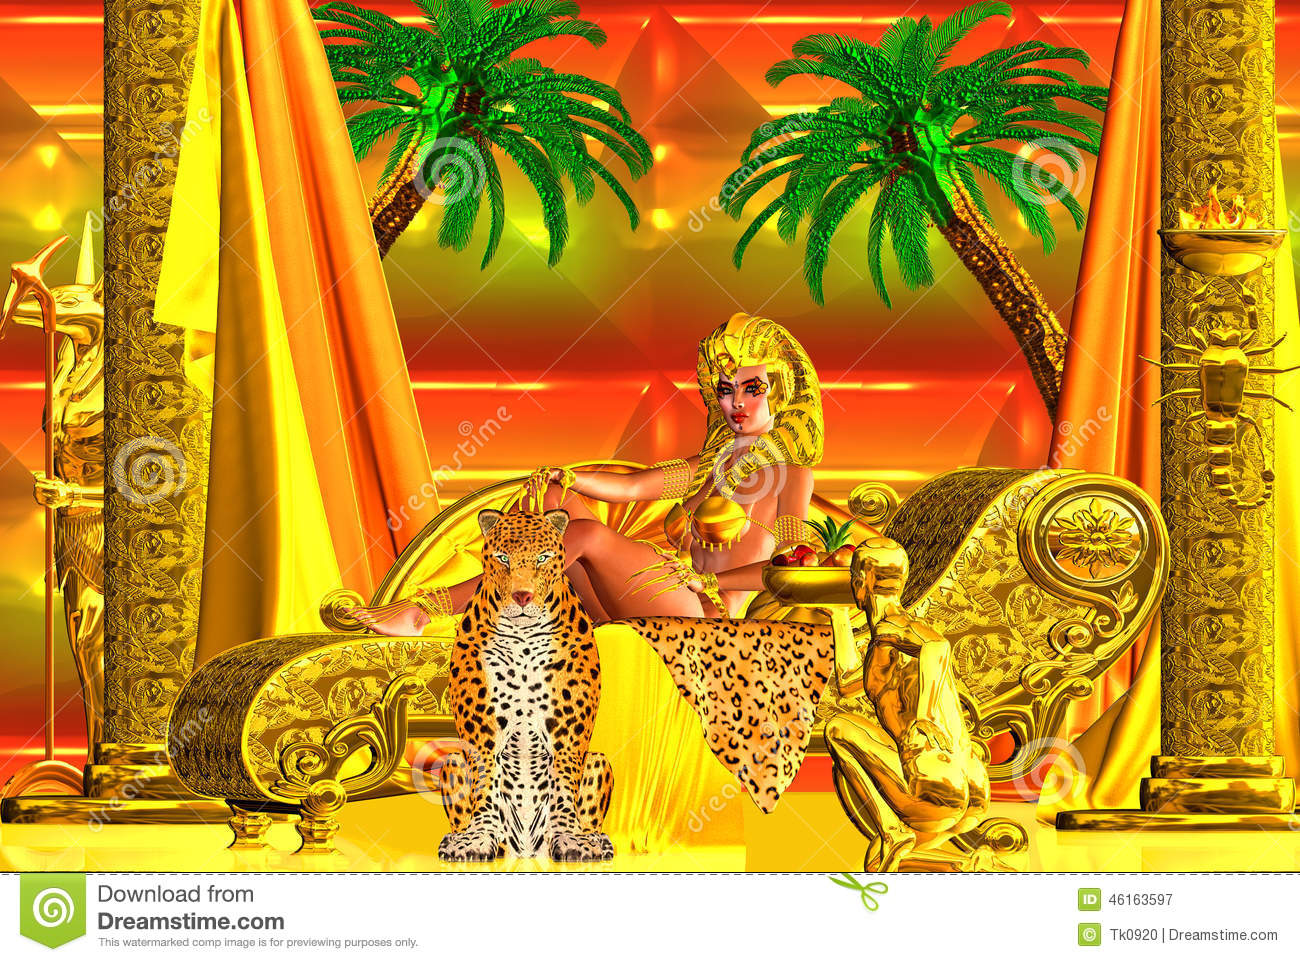 A Beautiful Egyptian Goddess Lying Down A Chaise Lounge Stock Illustration Image